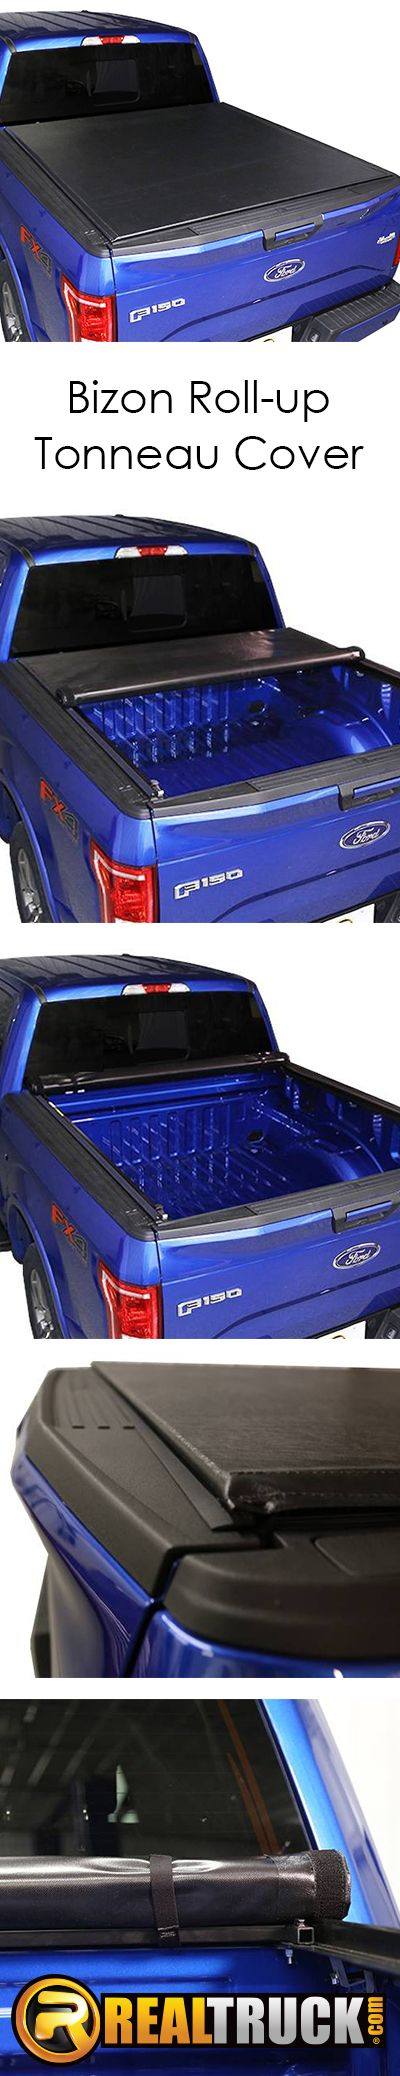 A truck bed cover is one of the most common items added to any pickup truck. There are several reasons why but the top three are cargo protection, better fuel economy, and it makes the truck look good. You'll get all 3 of those benefits and keep more money in your pocket with a Bizon roll-up tonneau cover!